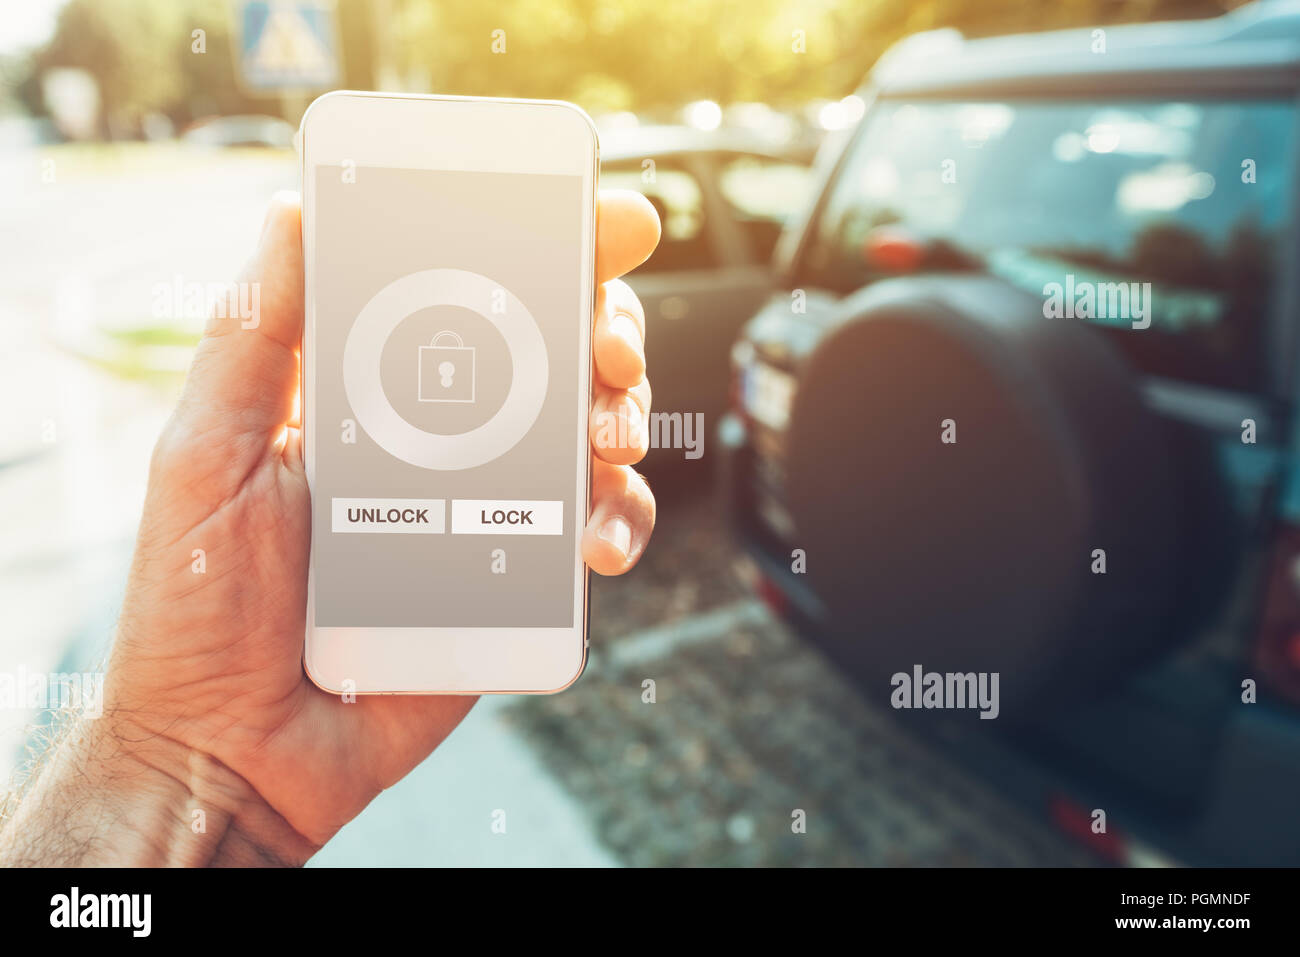 Unlock Car With Phone >> Car Smartphone App For Vehicle Lock And Unlock Man Holding